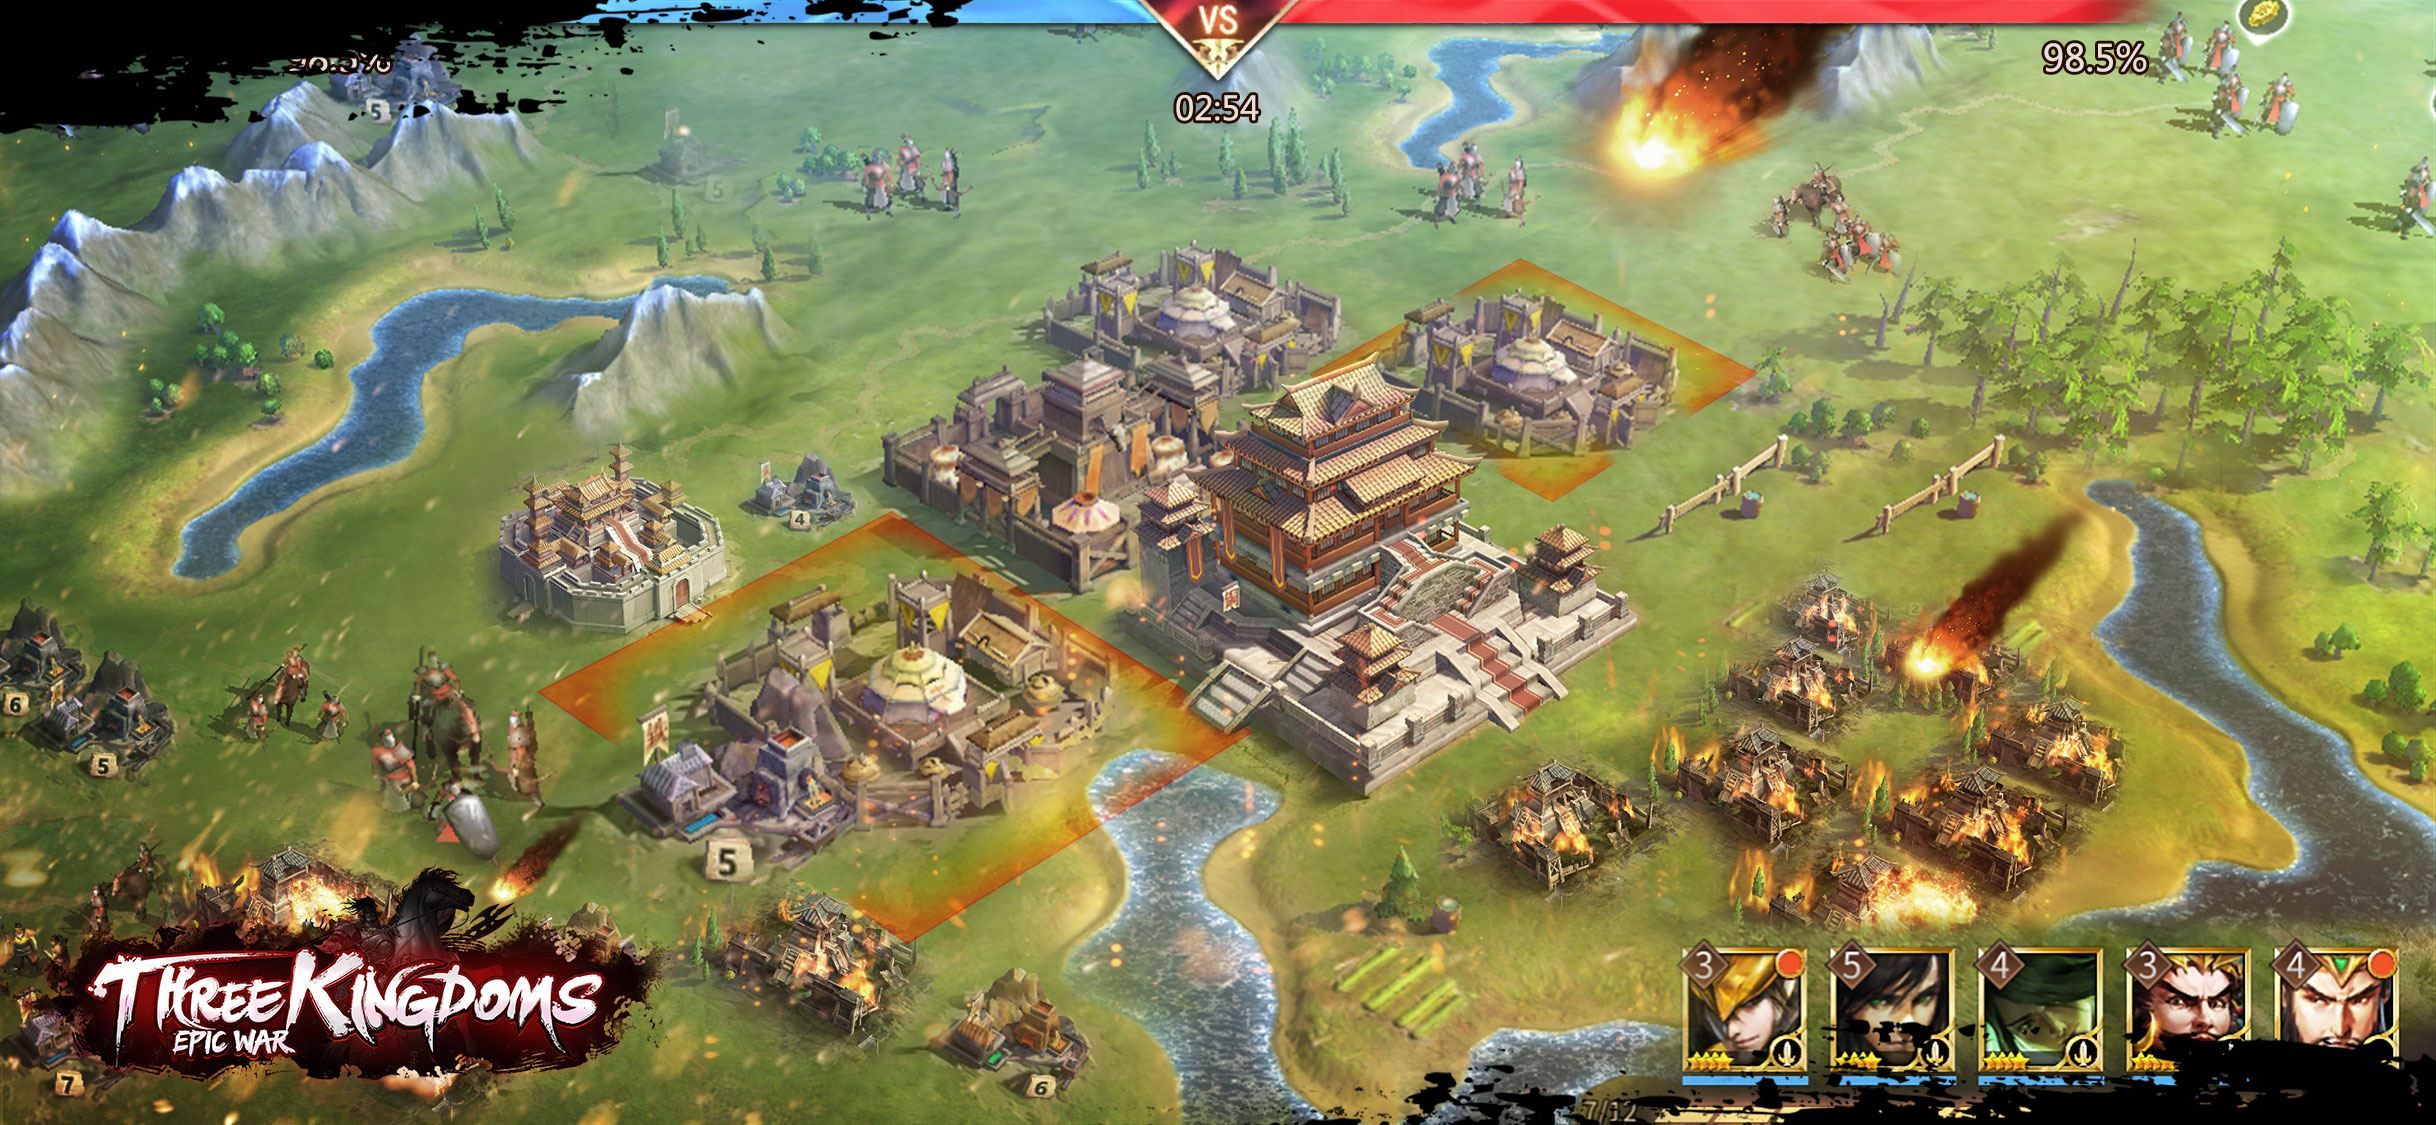 Tips And Tricks To Quickly Conquer Three Kingdoms: Epic War Lands